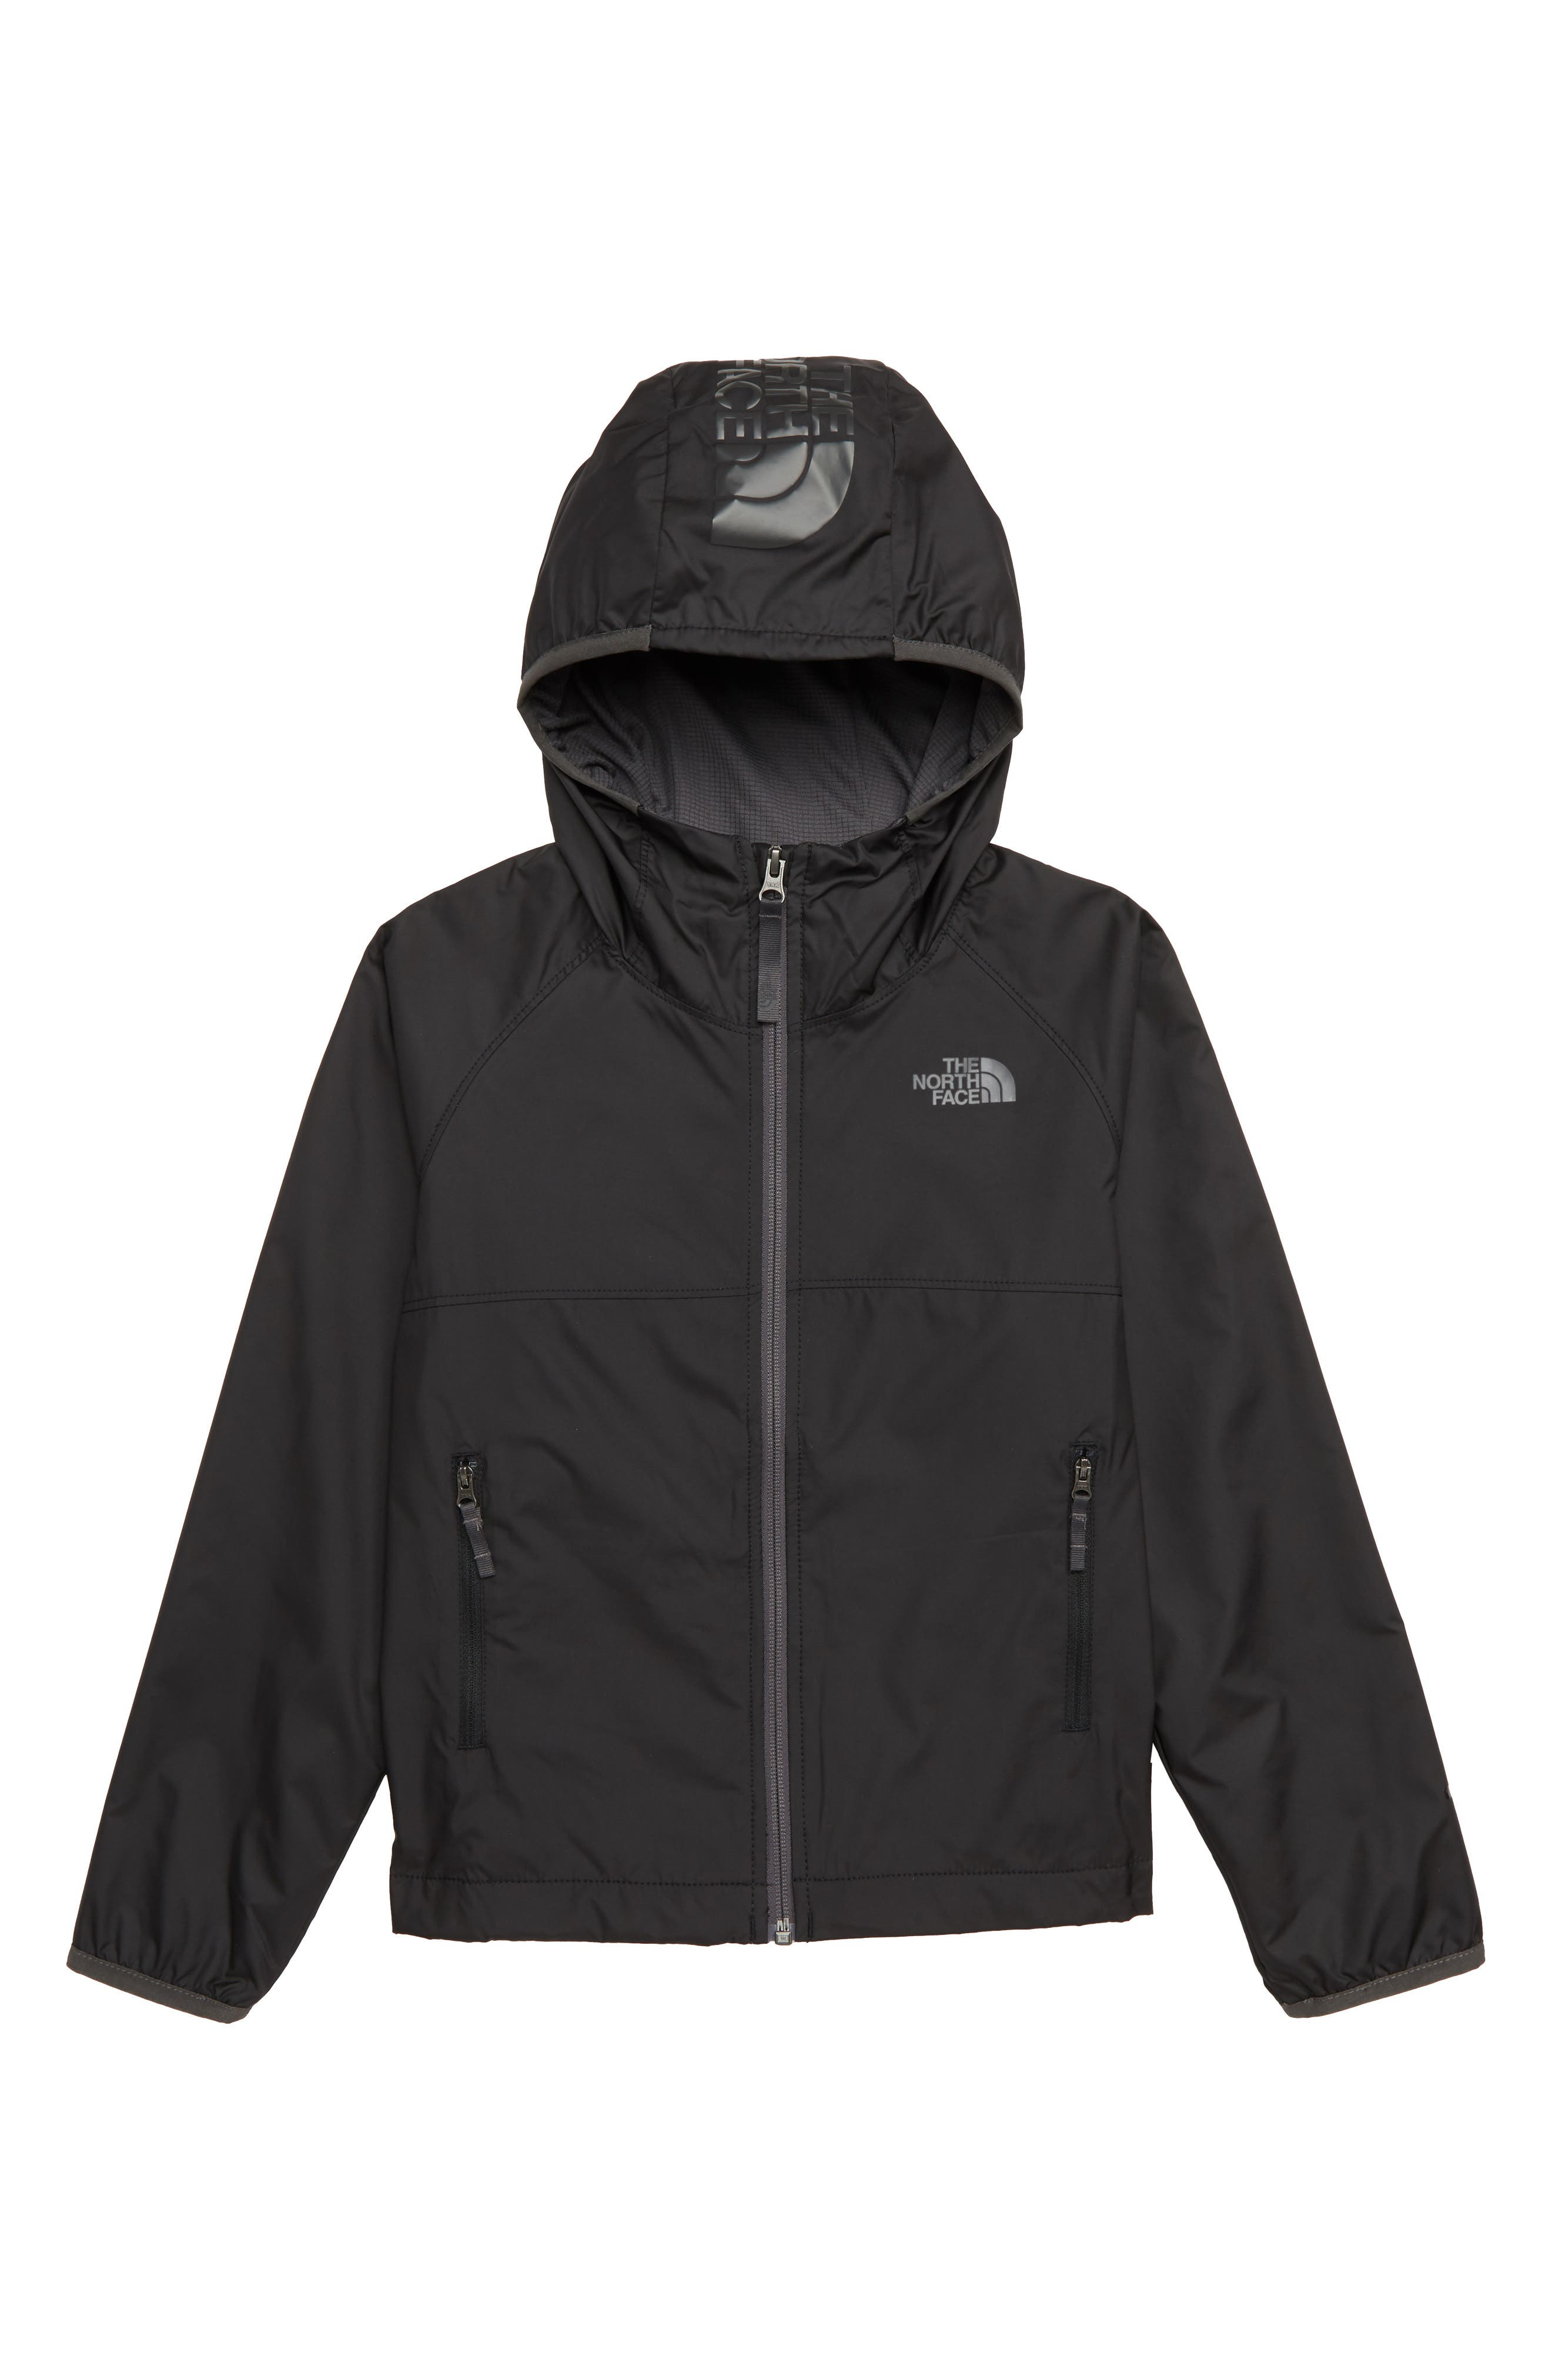 Windy Crest Water Repellent Jacket,                             Main thumbnail 1, color,                             BLACK